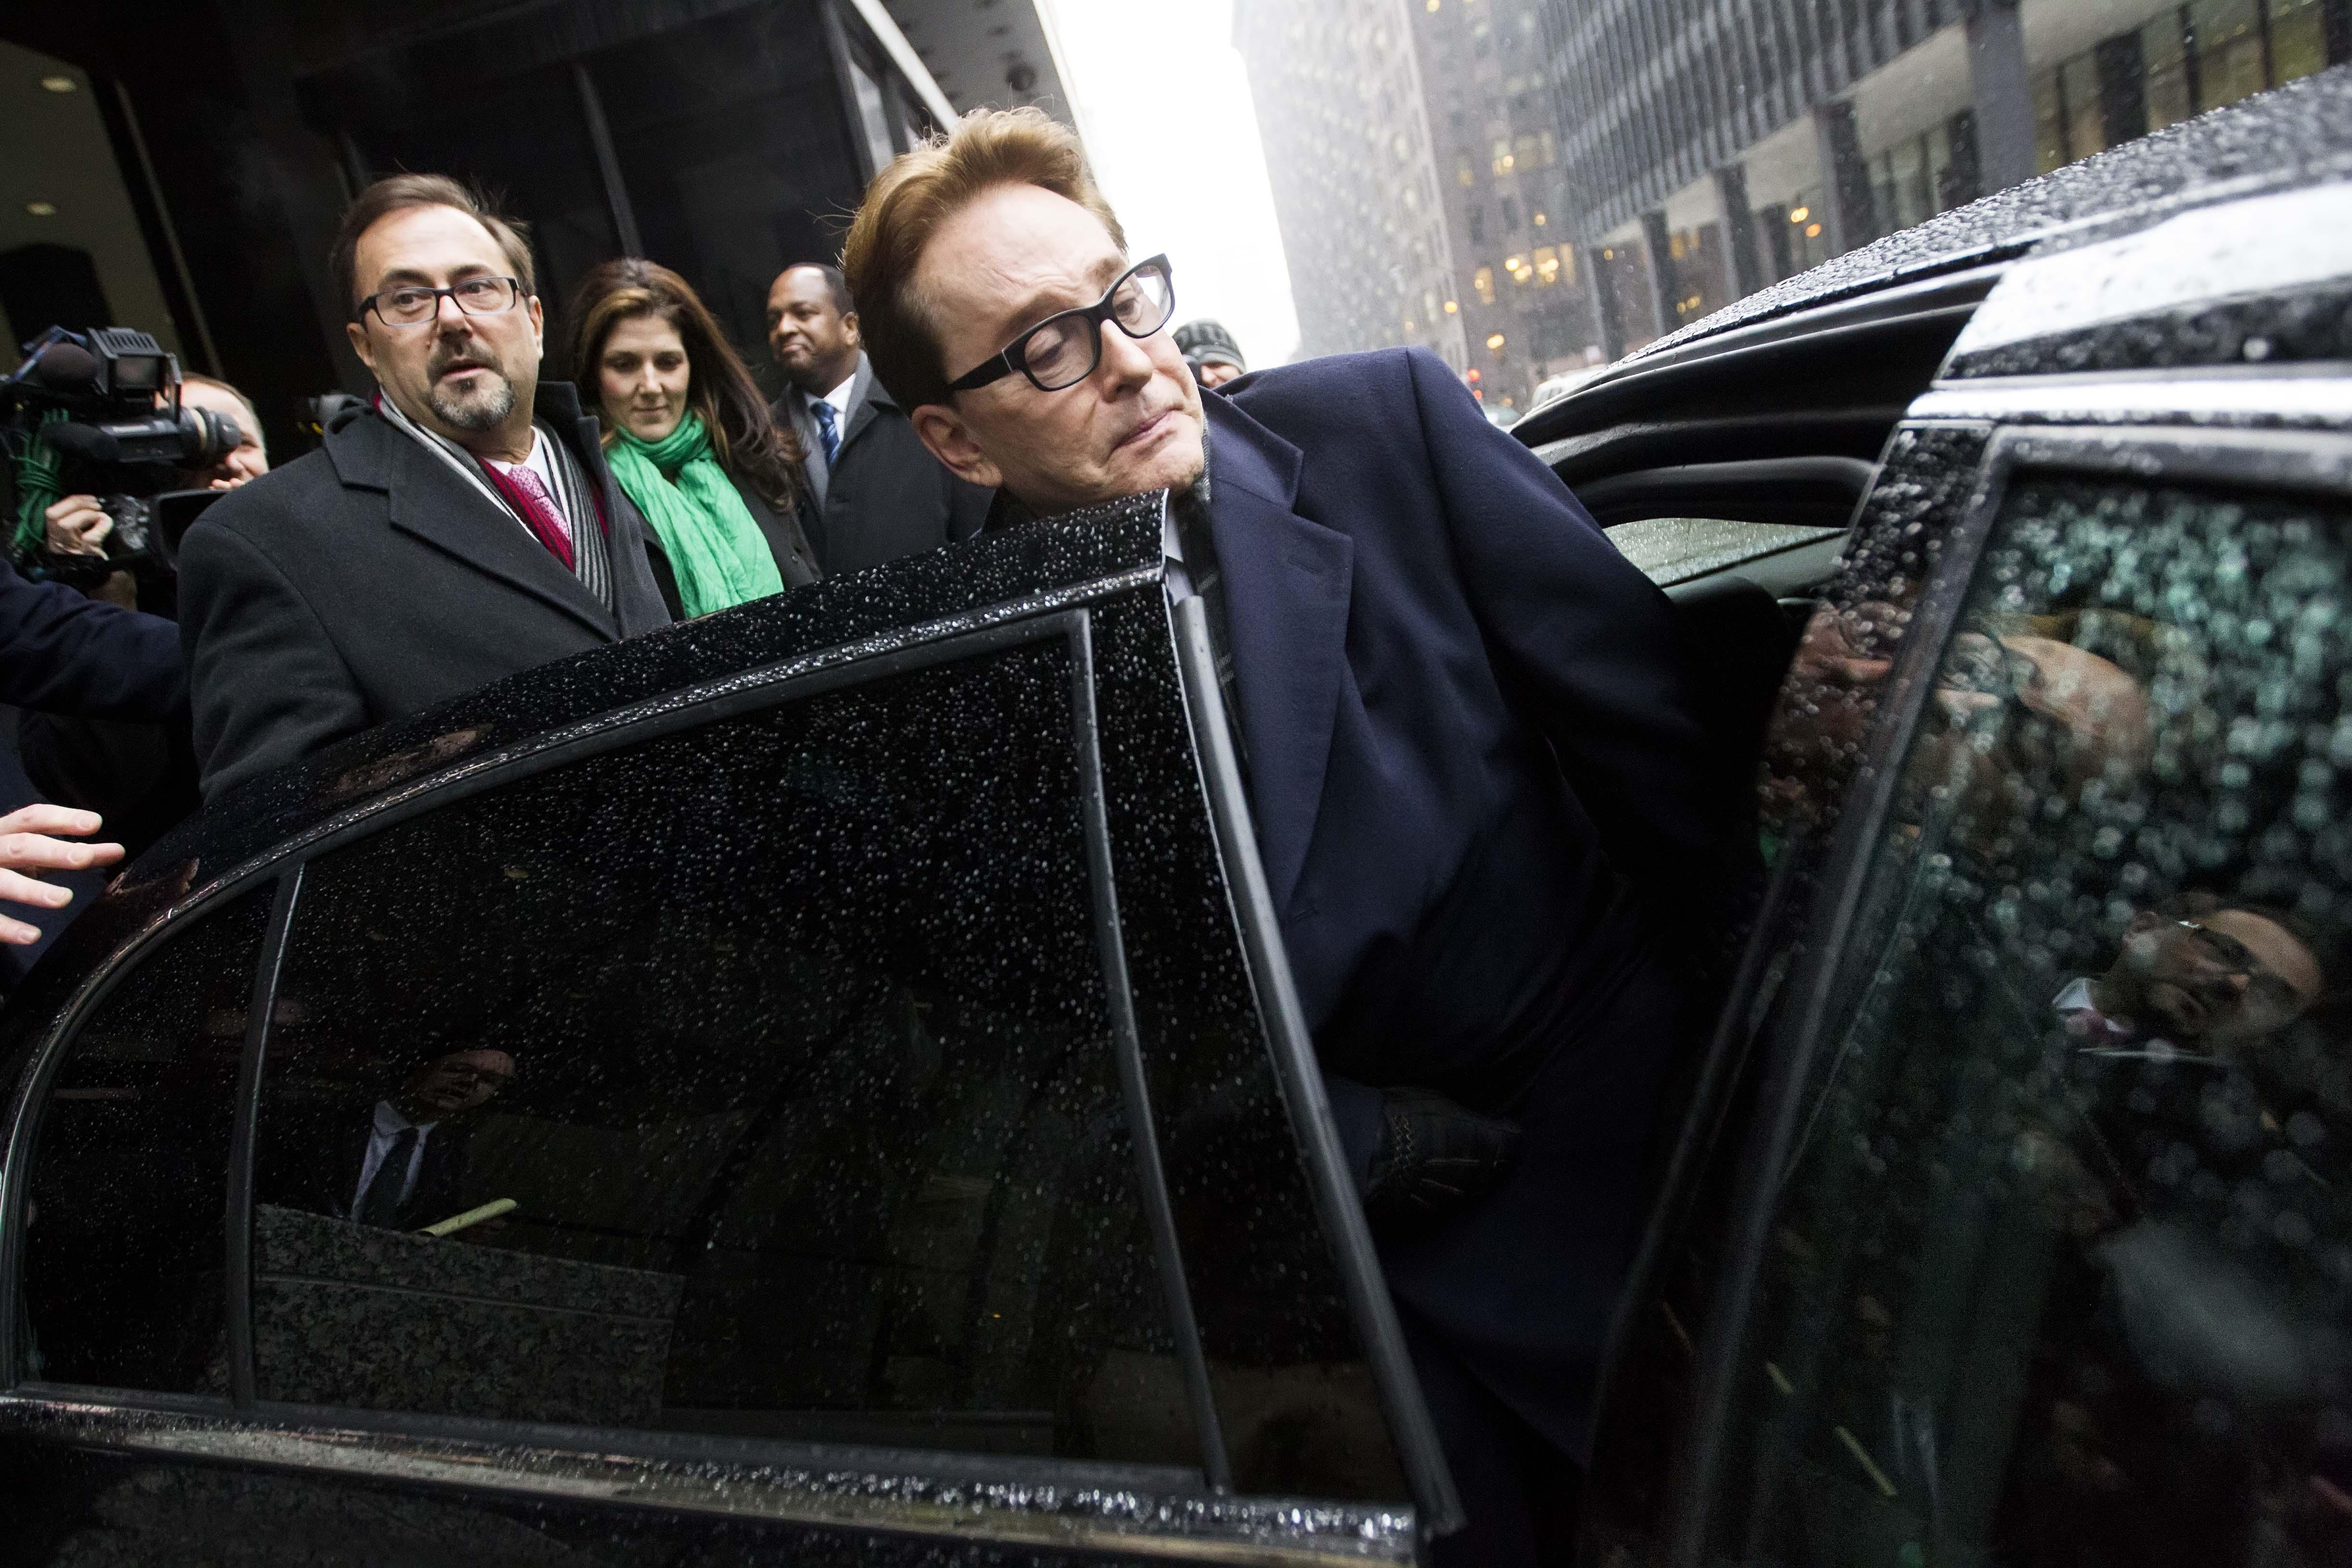 H. Ty Warner, who created Beanie Babies, gets into a car in Chicago Tuesday after being sentenced to probation.